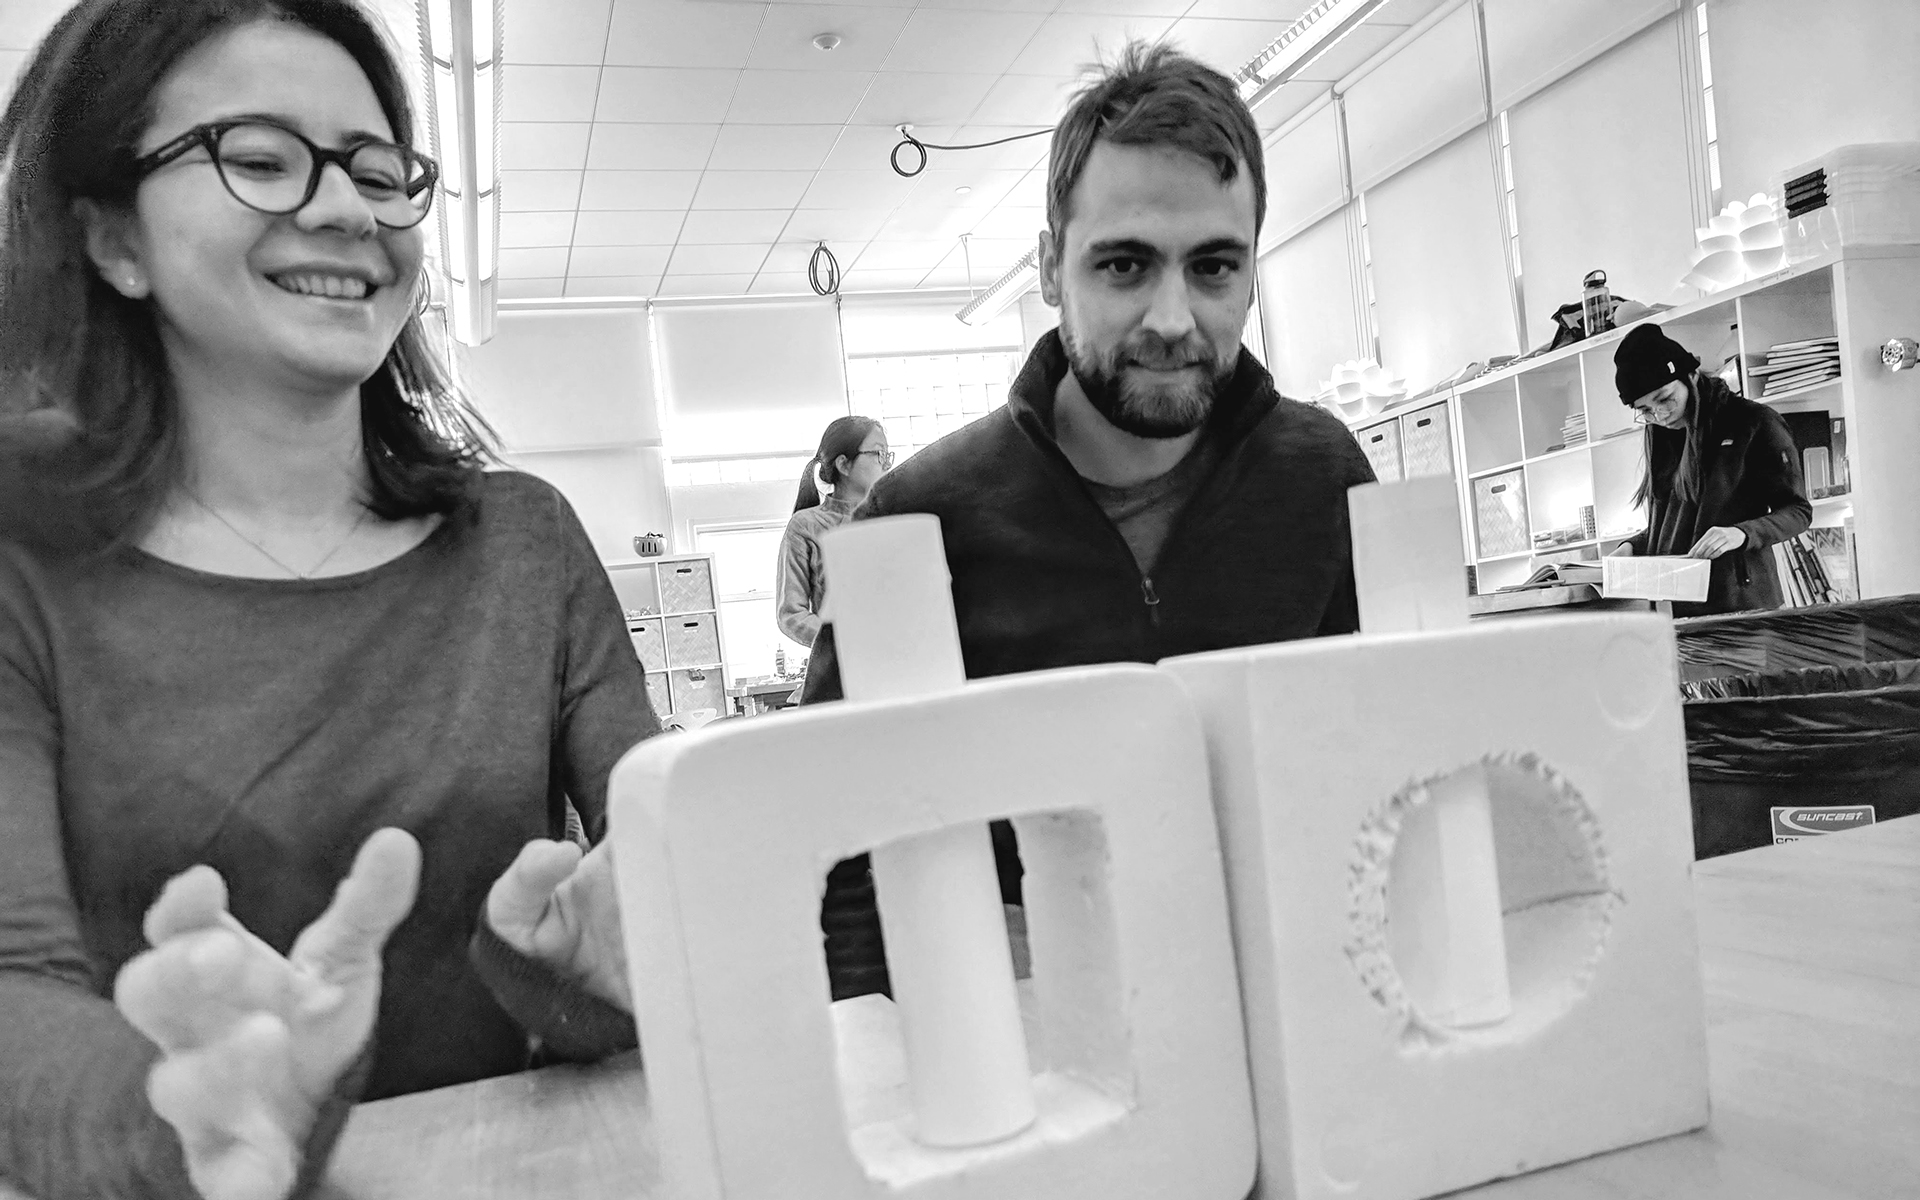 Two IDM students showcasing their prototype